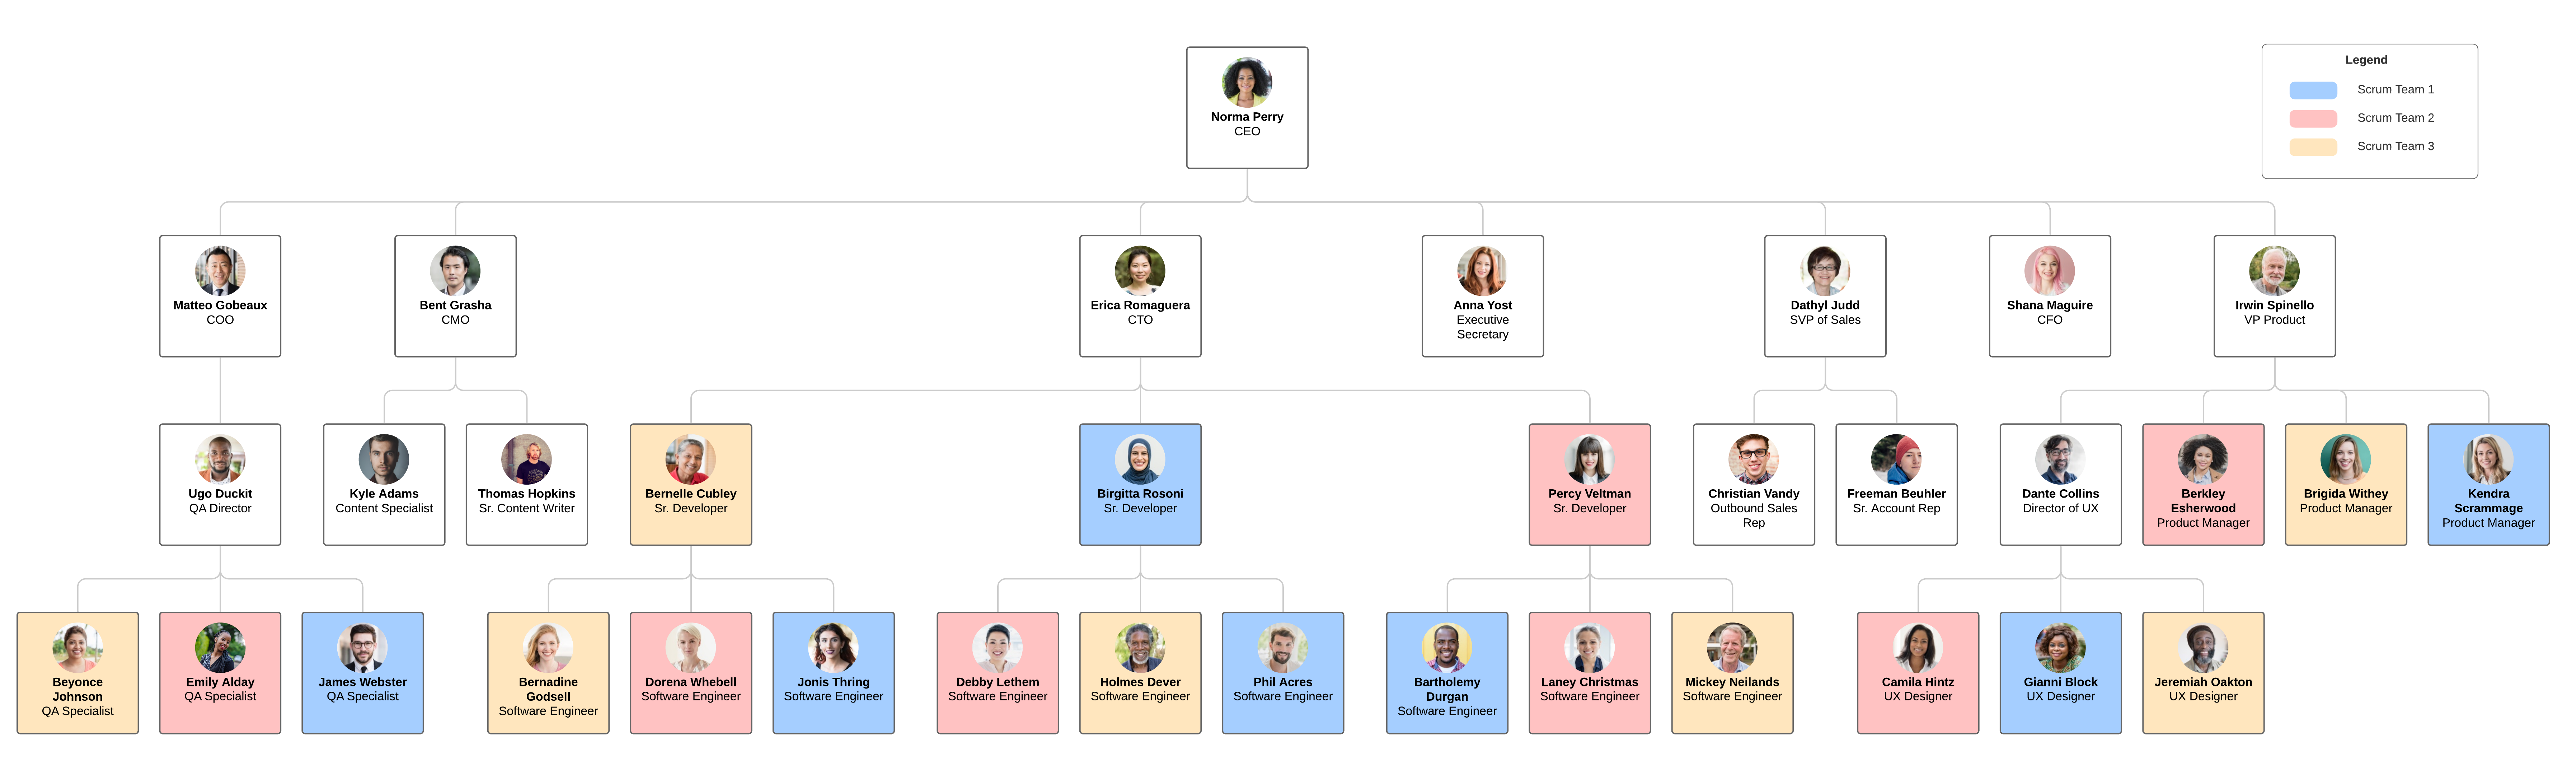 team-based org chart example